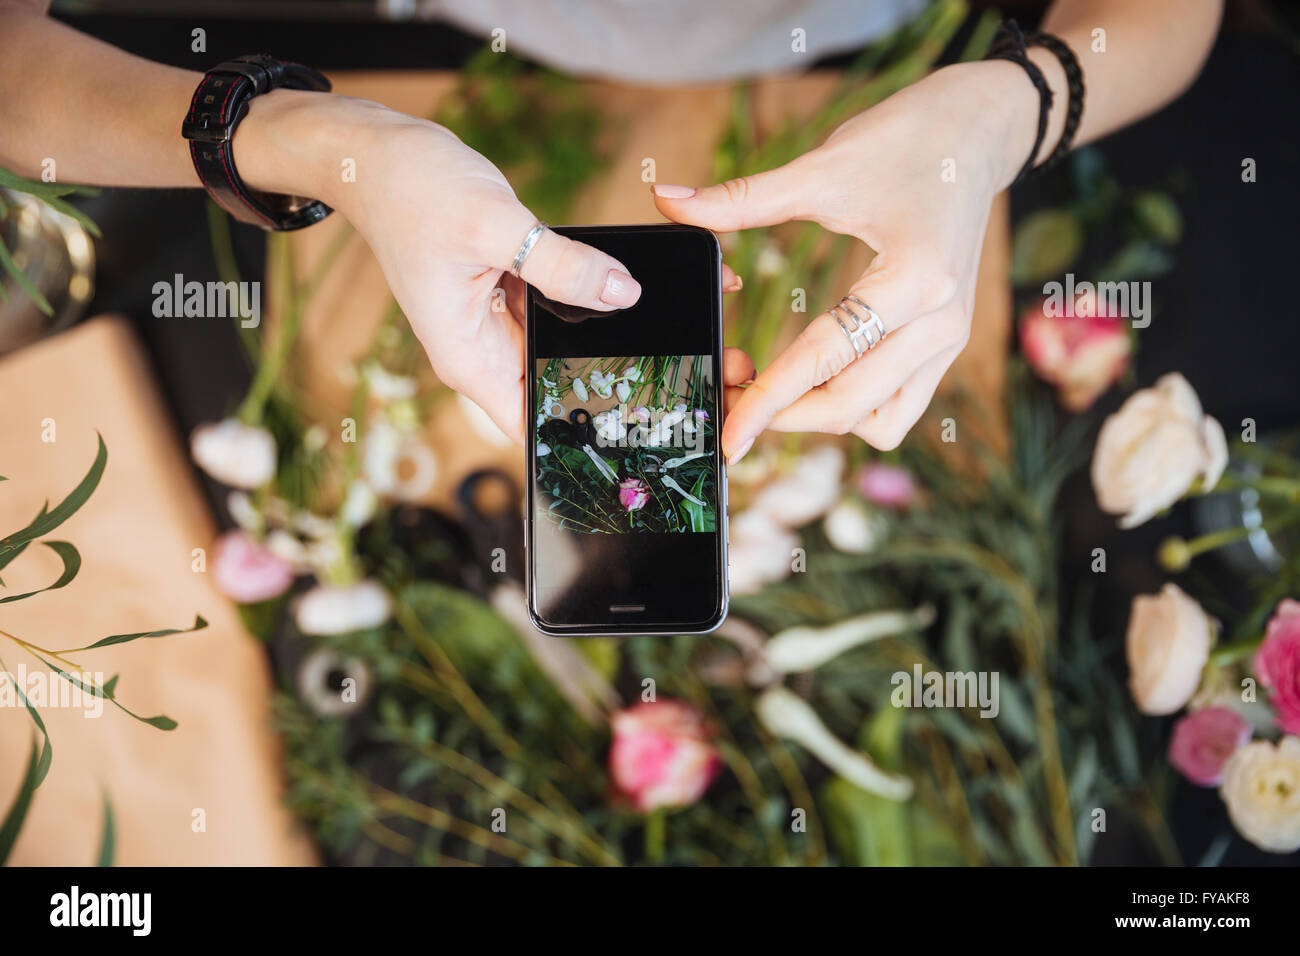 Top view of hands of woman florist taking pictures of flowers with mobile phone - Stock Image